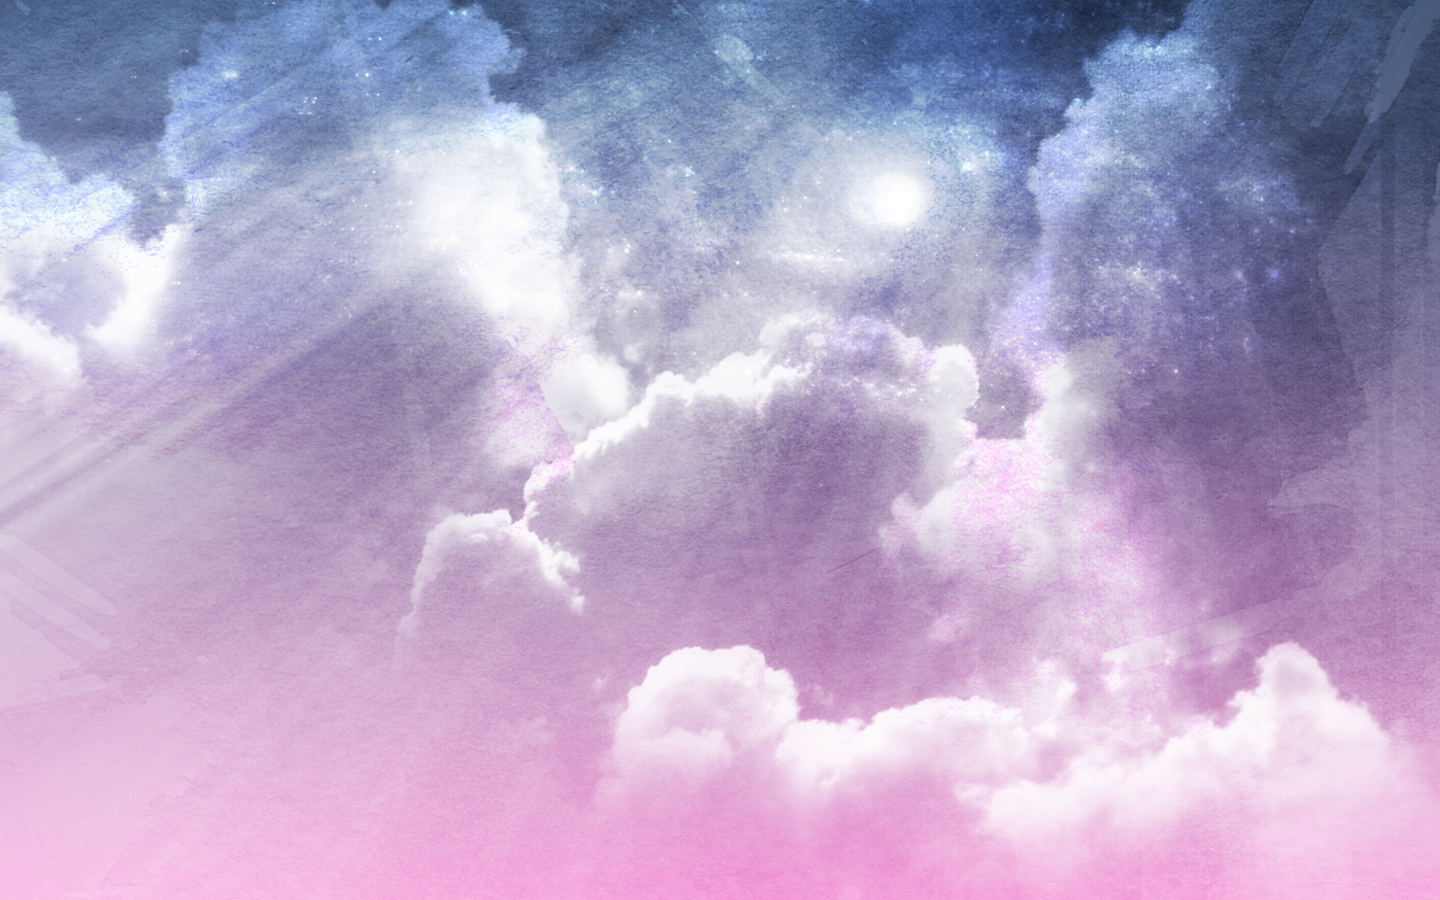 Free Abstract Cloudy Sky Stock Background Images » Backgrounds Etc